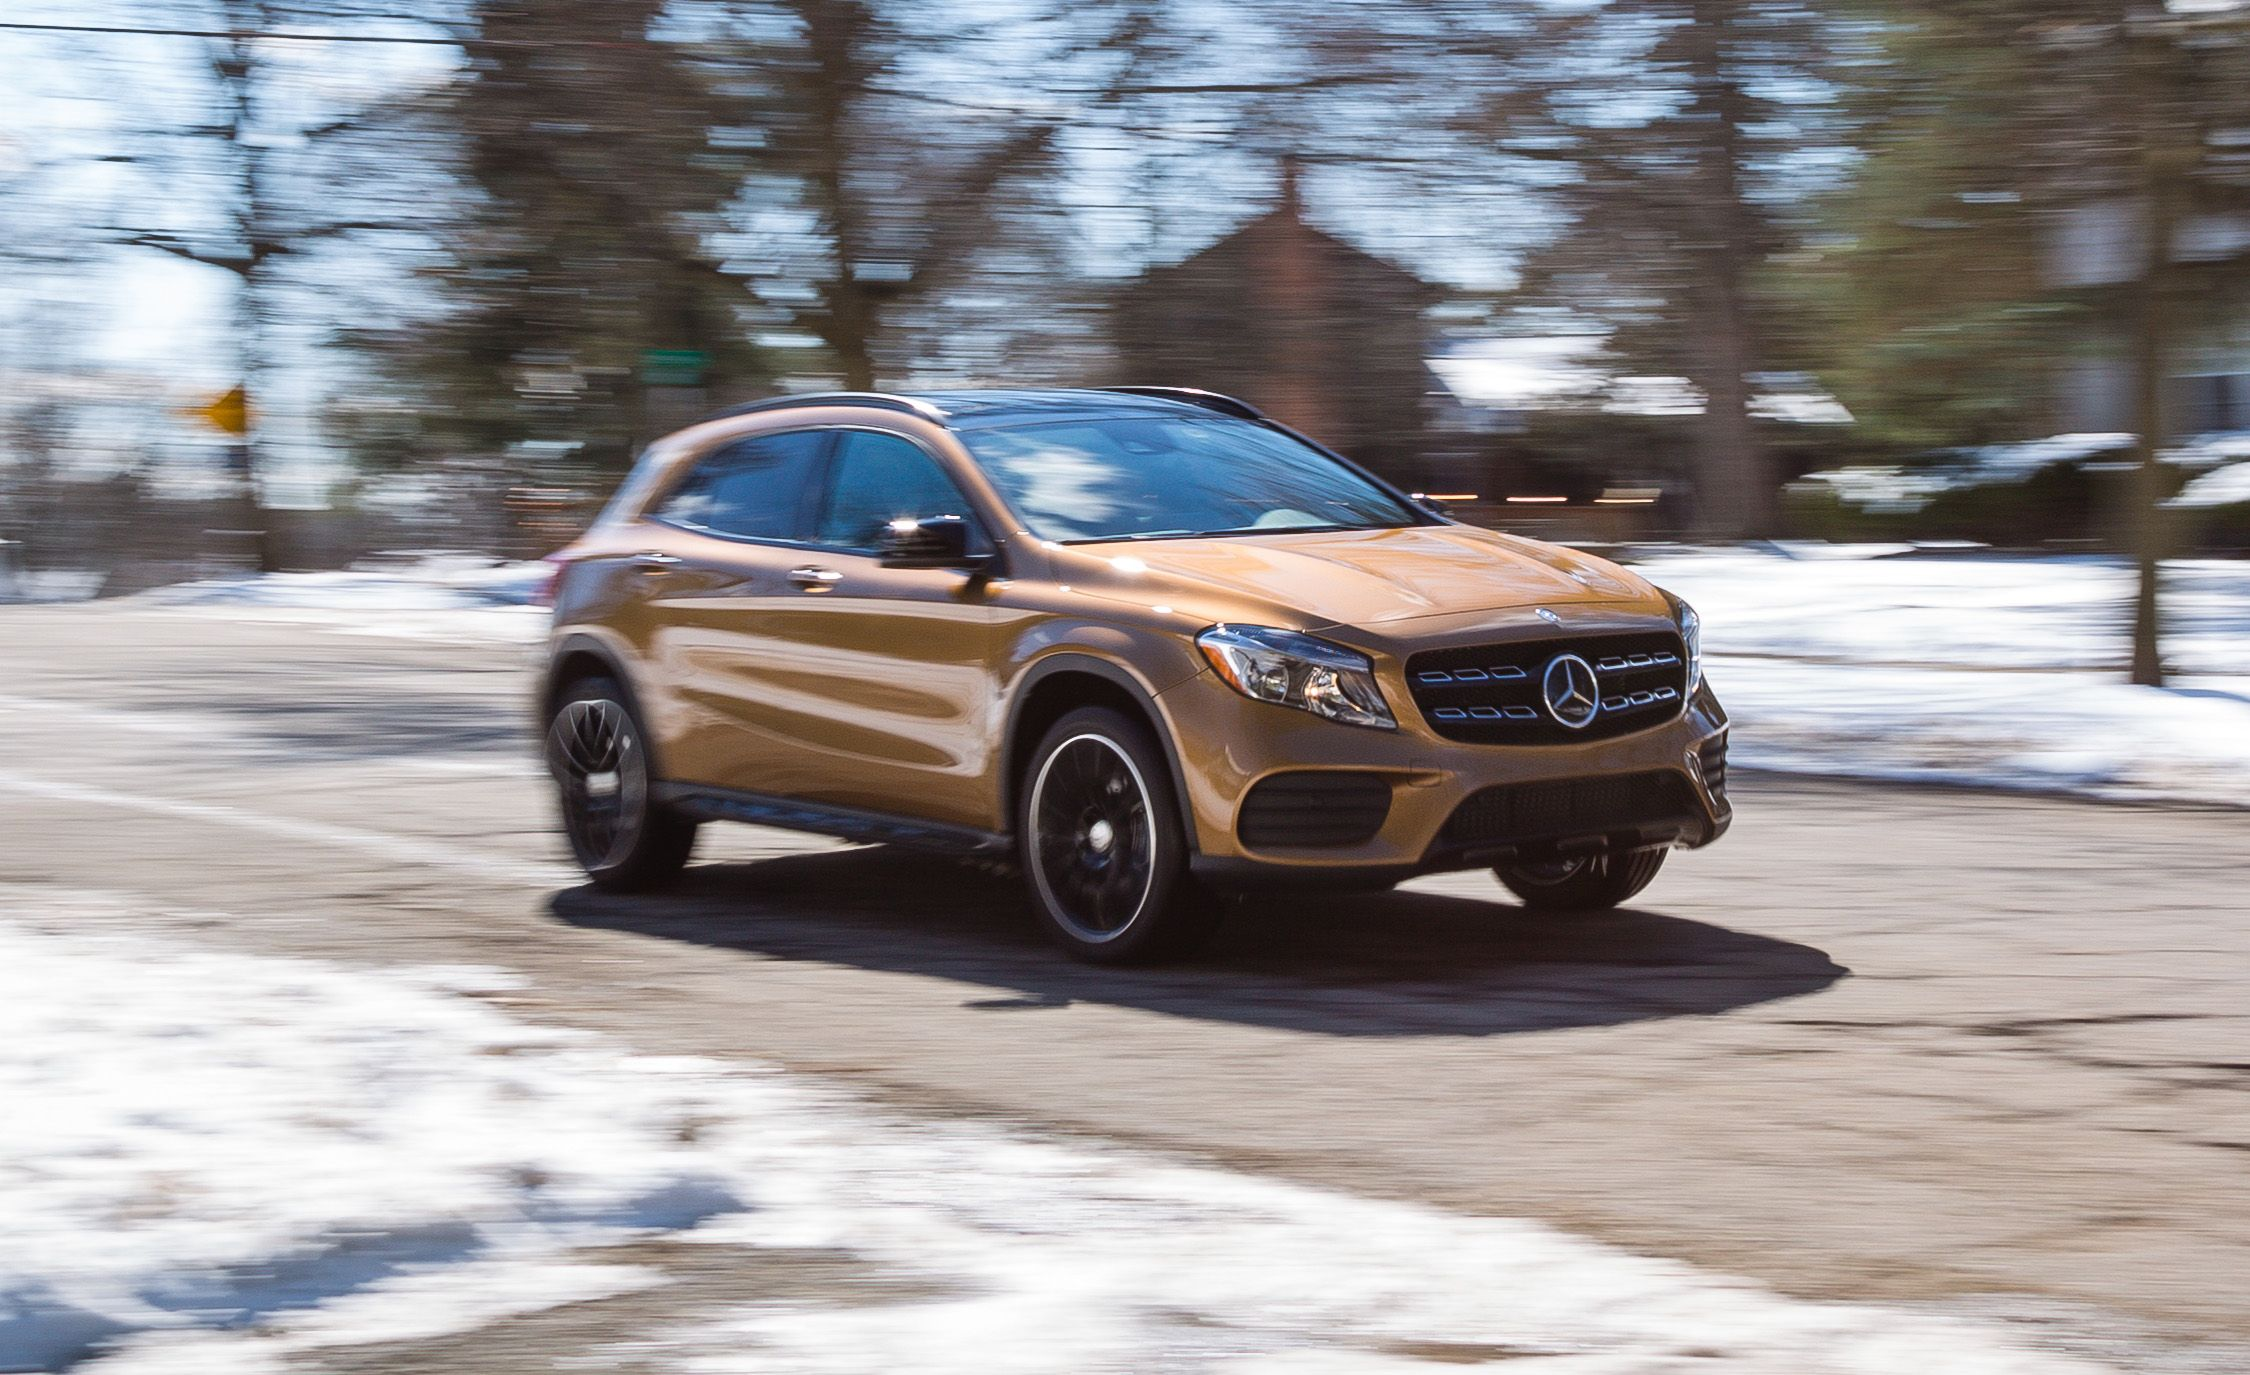 2018 Mercedes-Benz GLA250 4MATIC